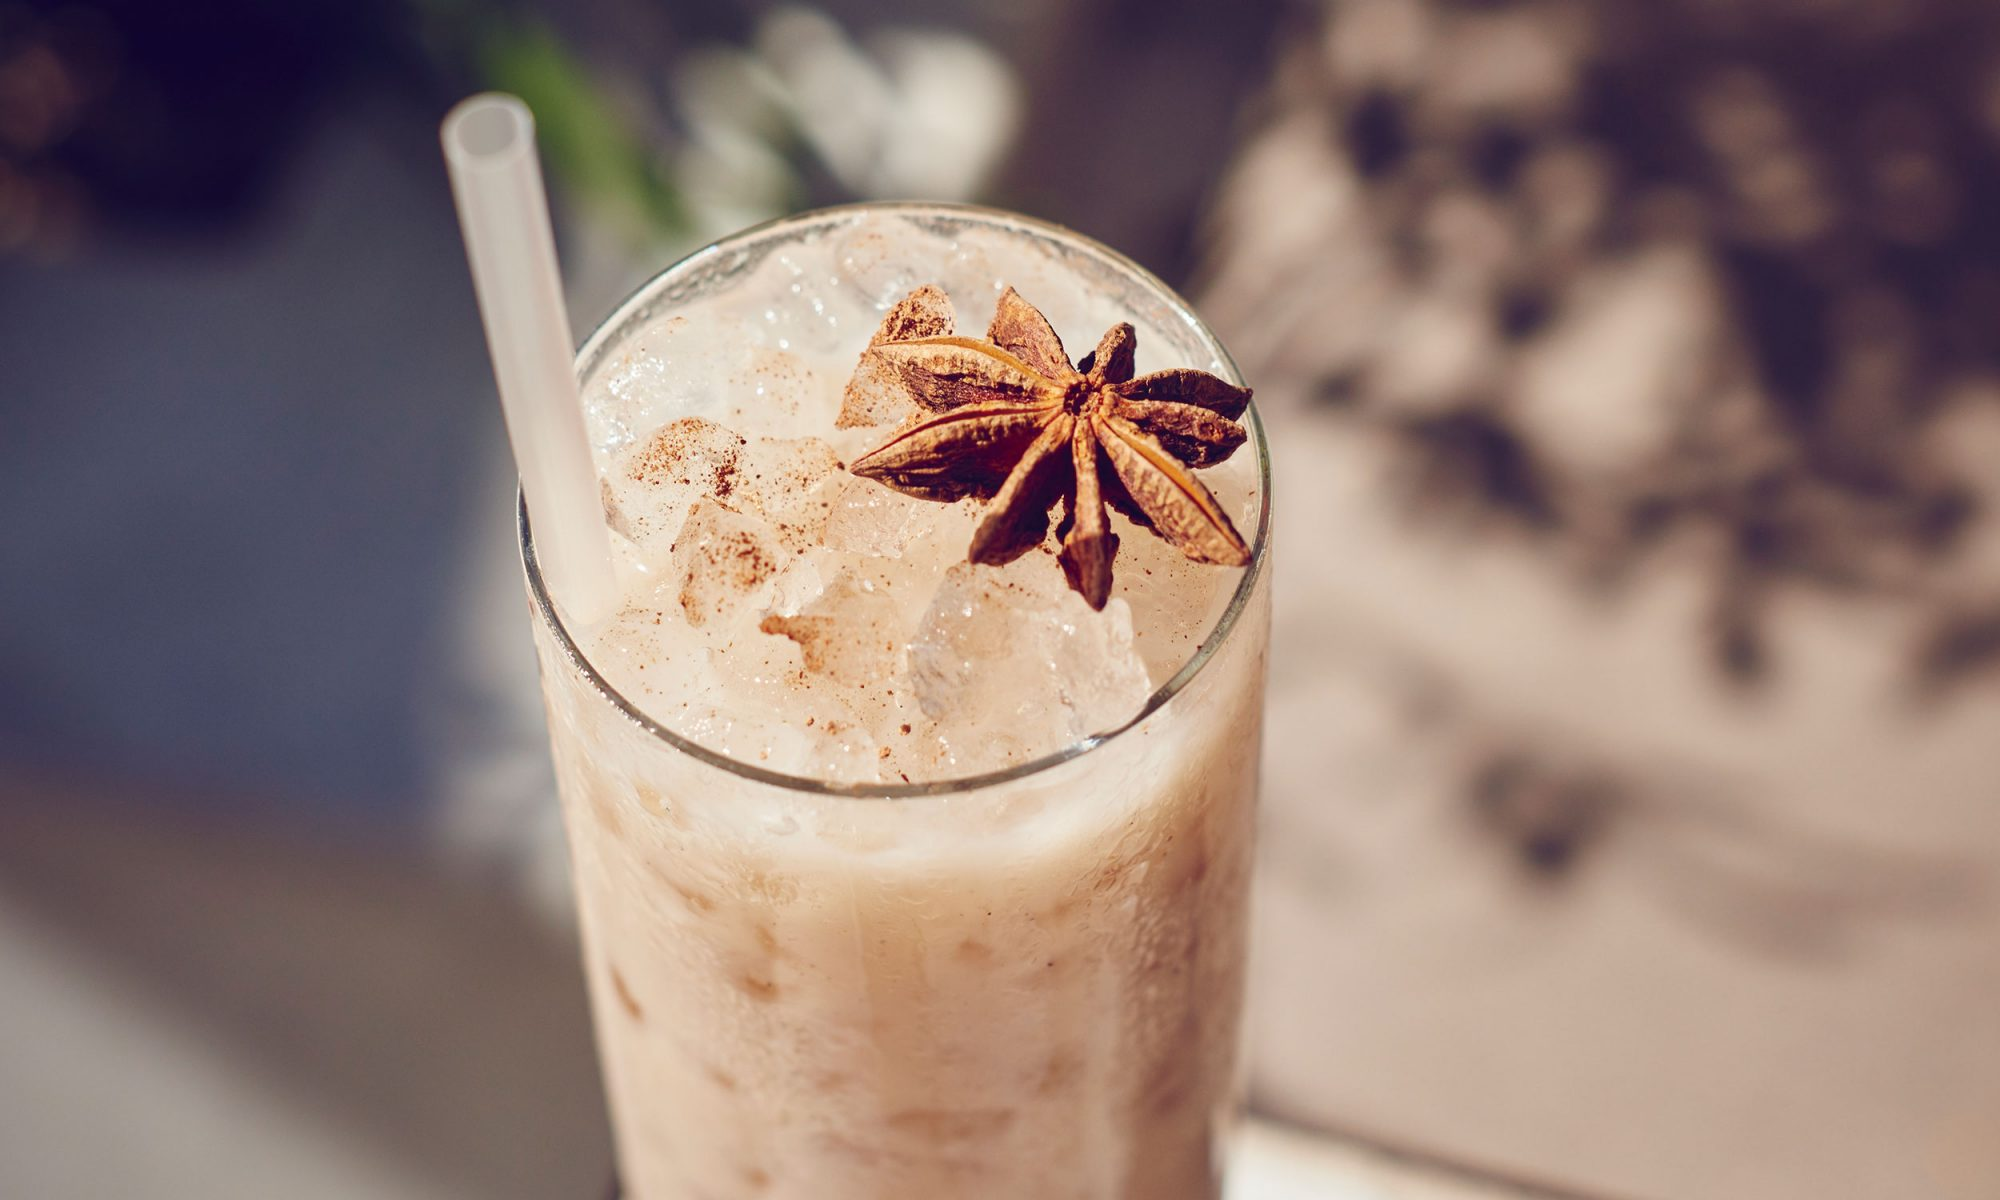 This Quinoa Horchata Is a Healthy, Homemade Summer Drink